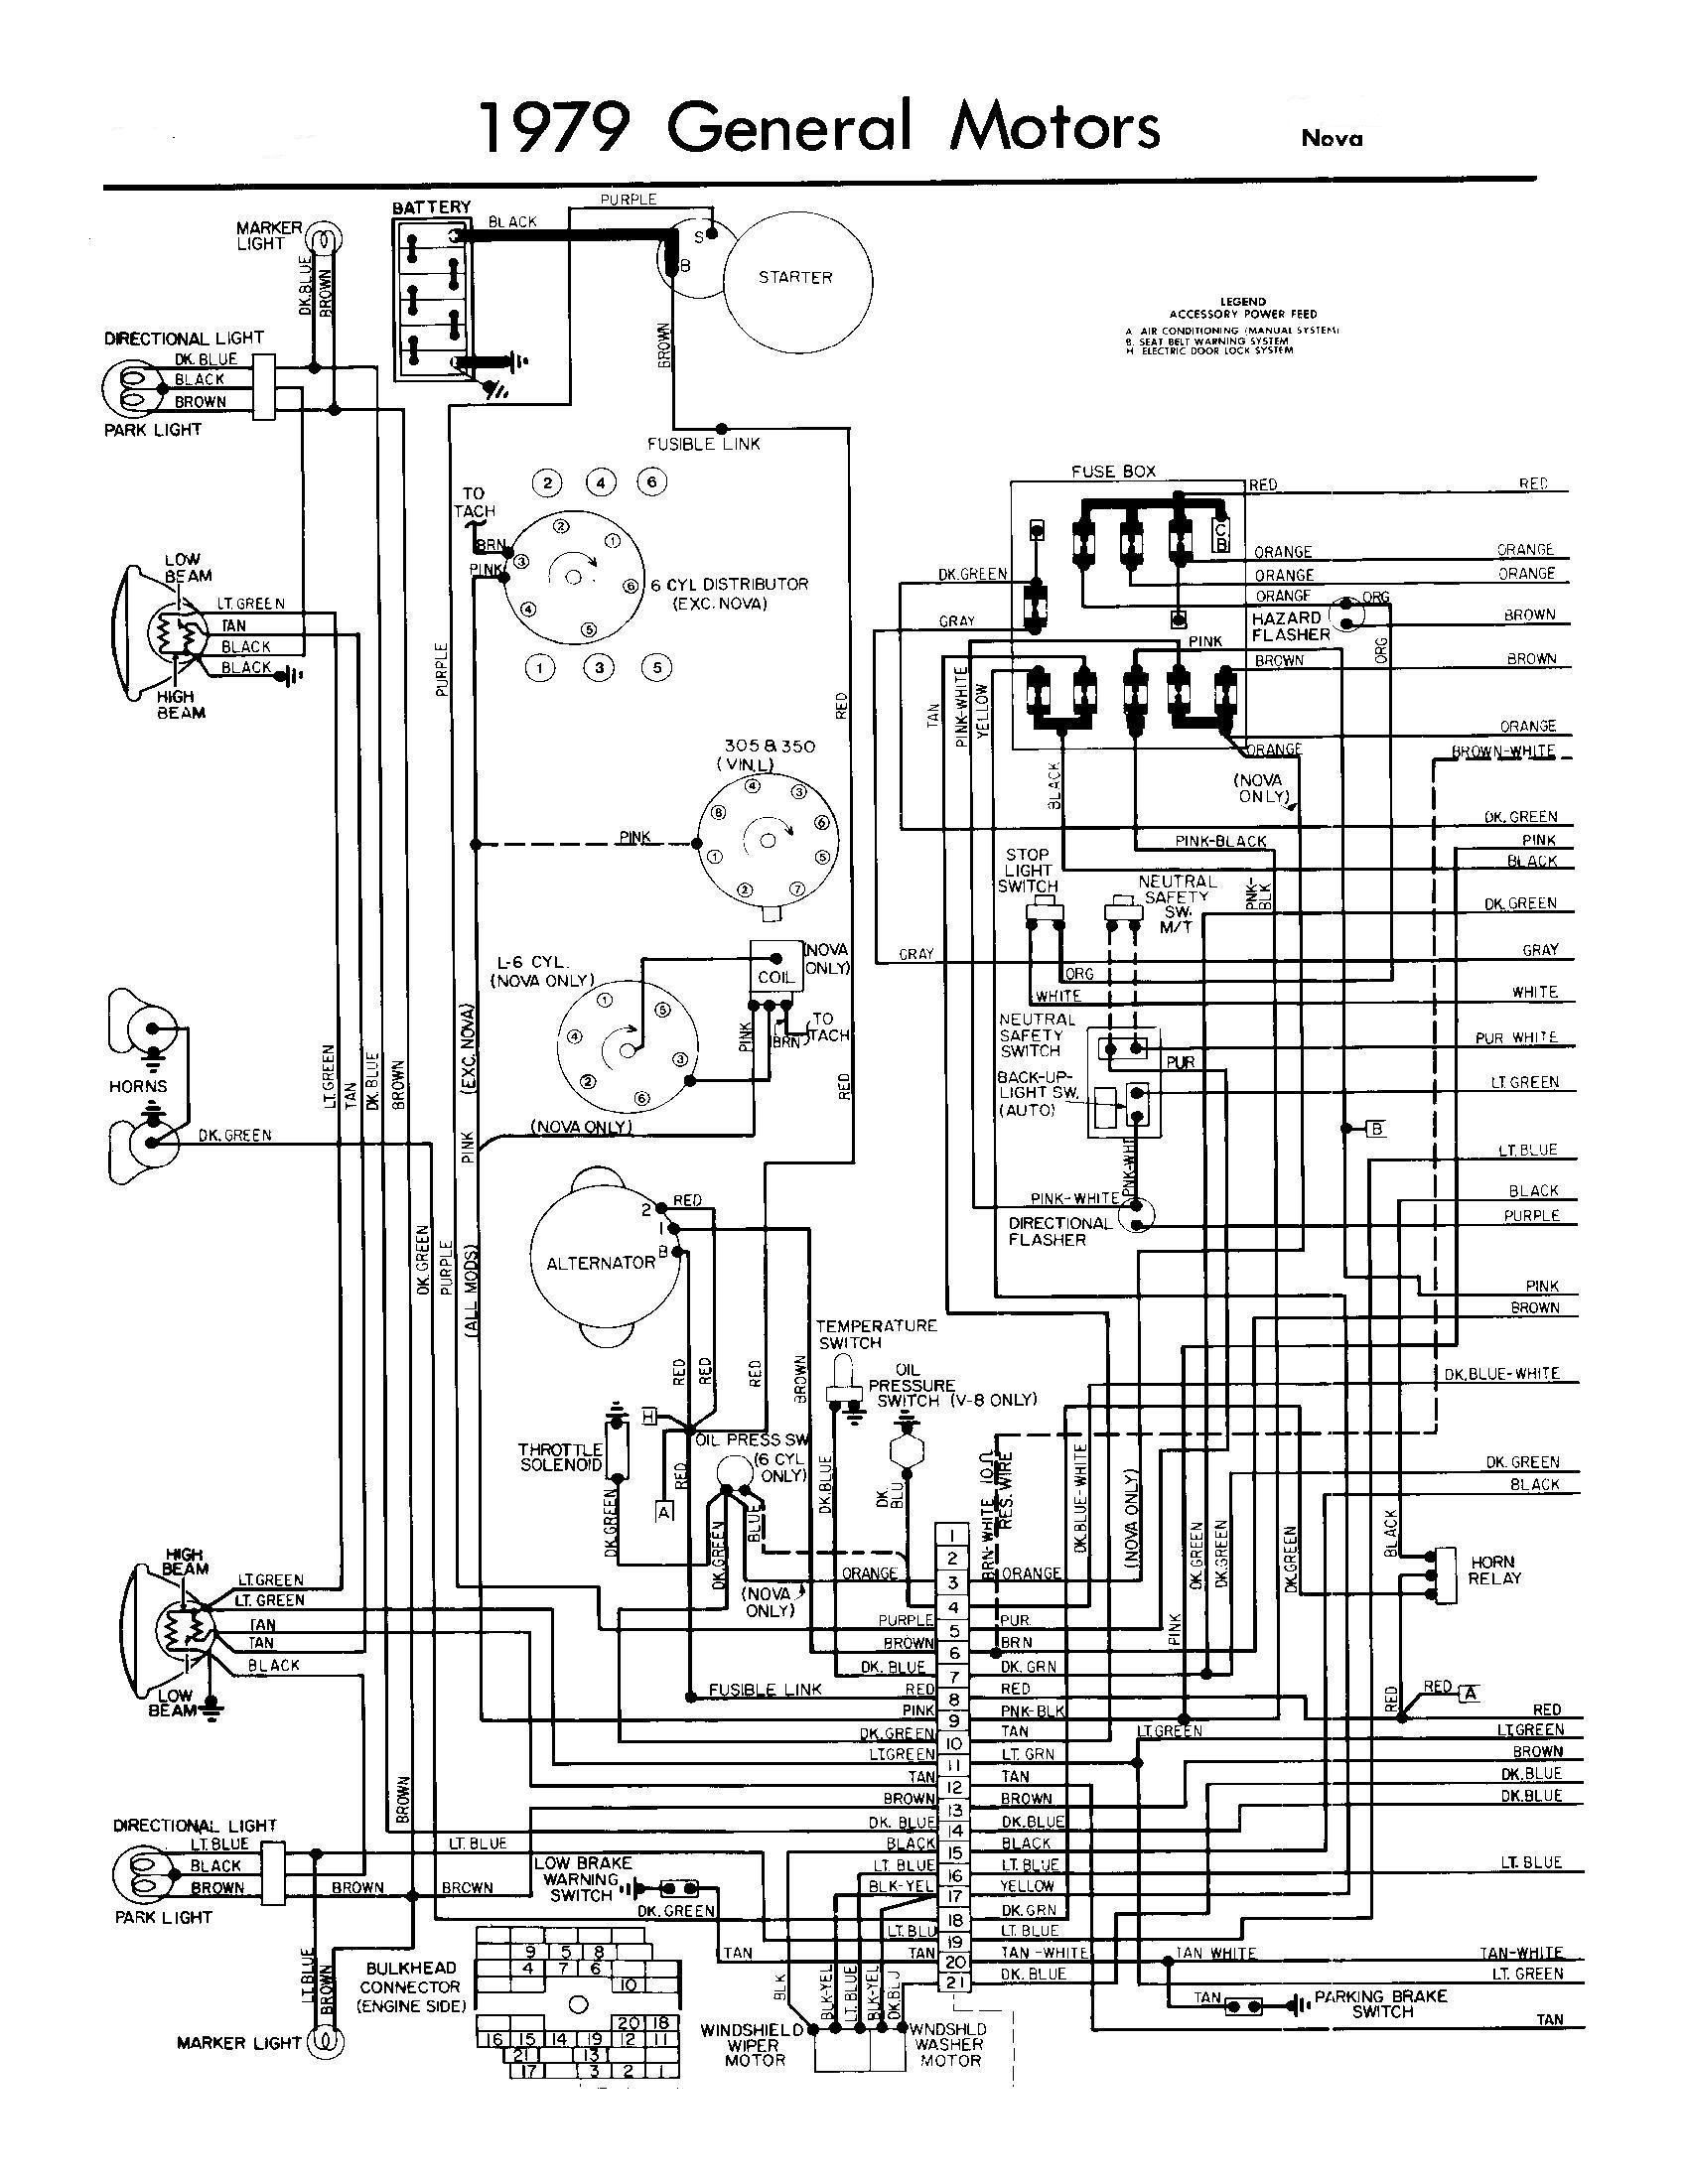 1966 chevrolet impala wiring diagram free picture